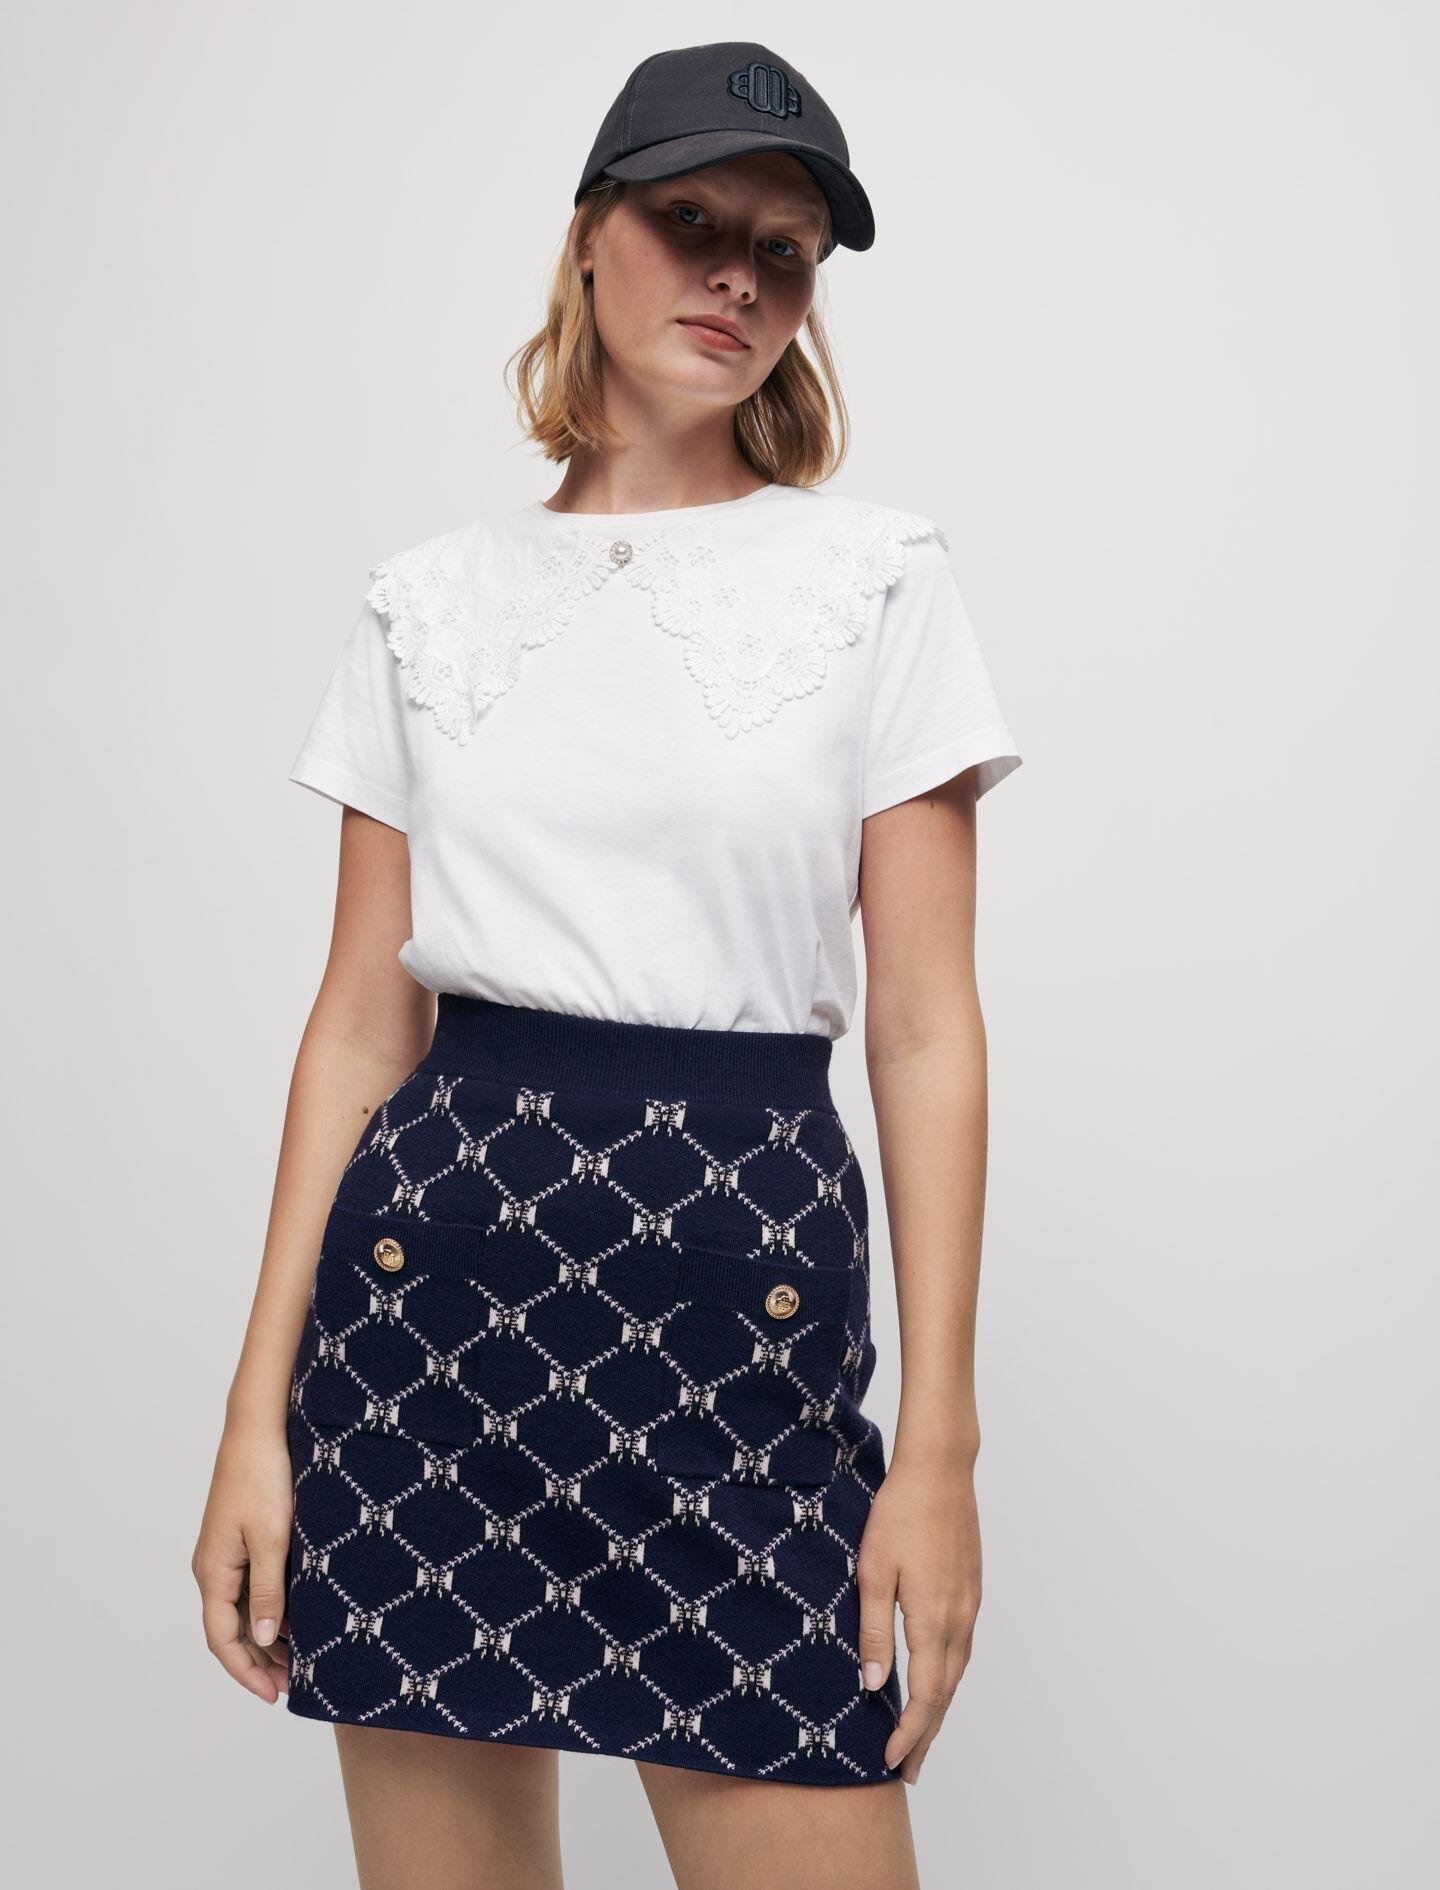 JACQUARD KNIT SKIRT WITH BOWS 1